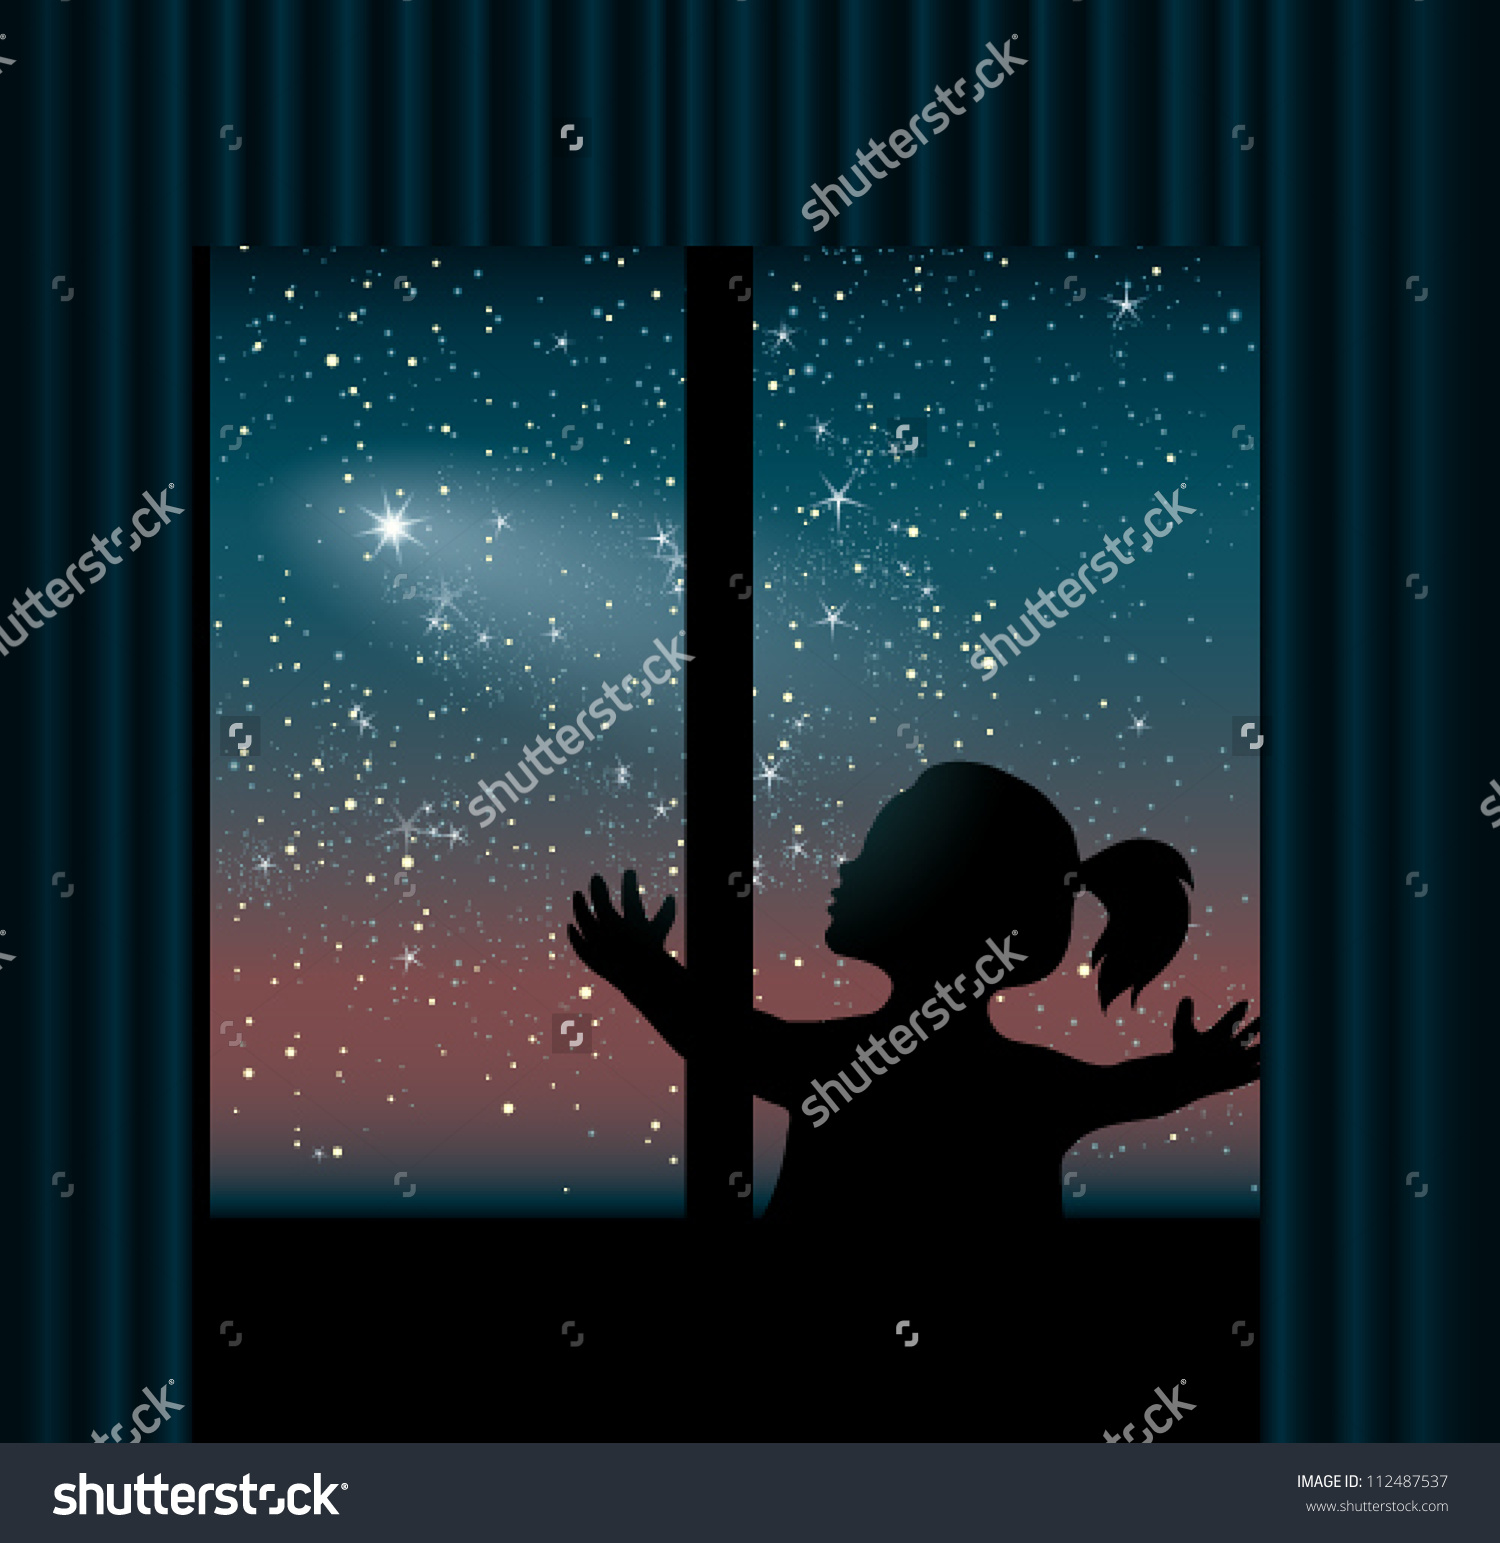 People looking to sky clipart.